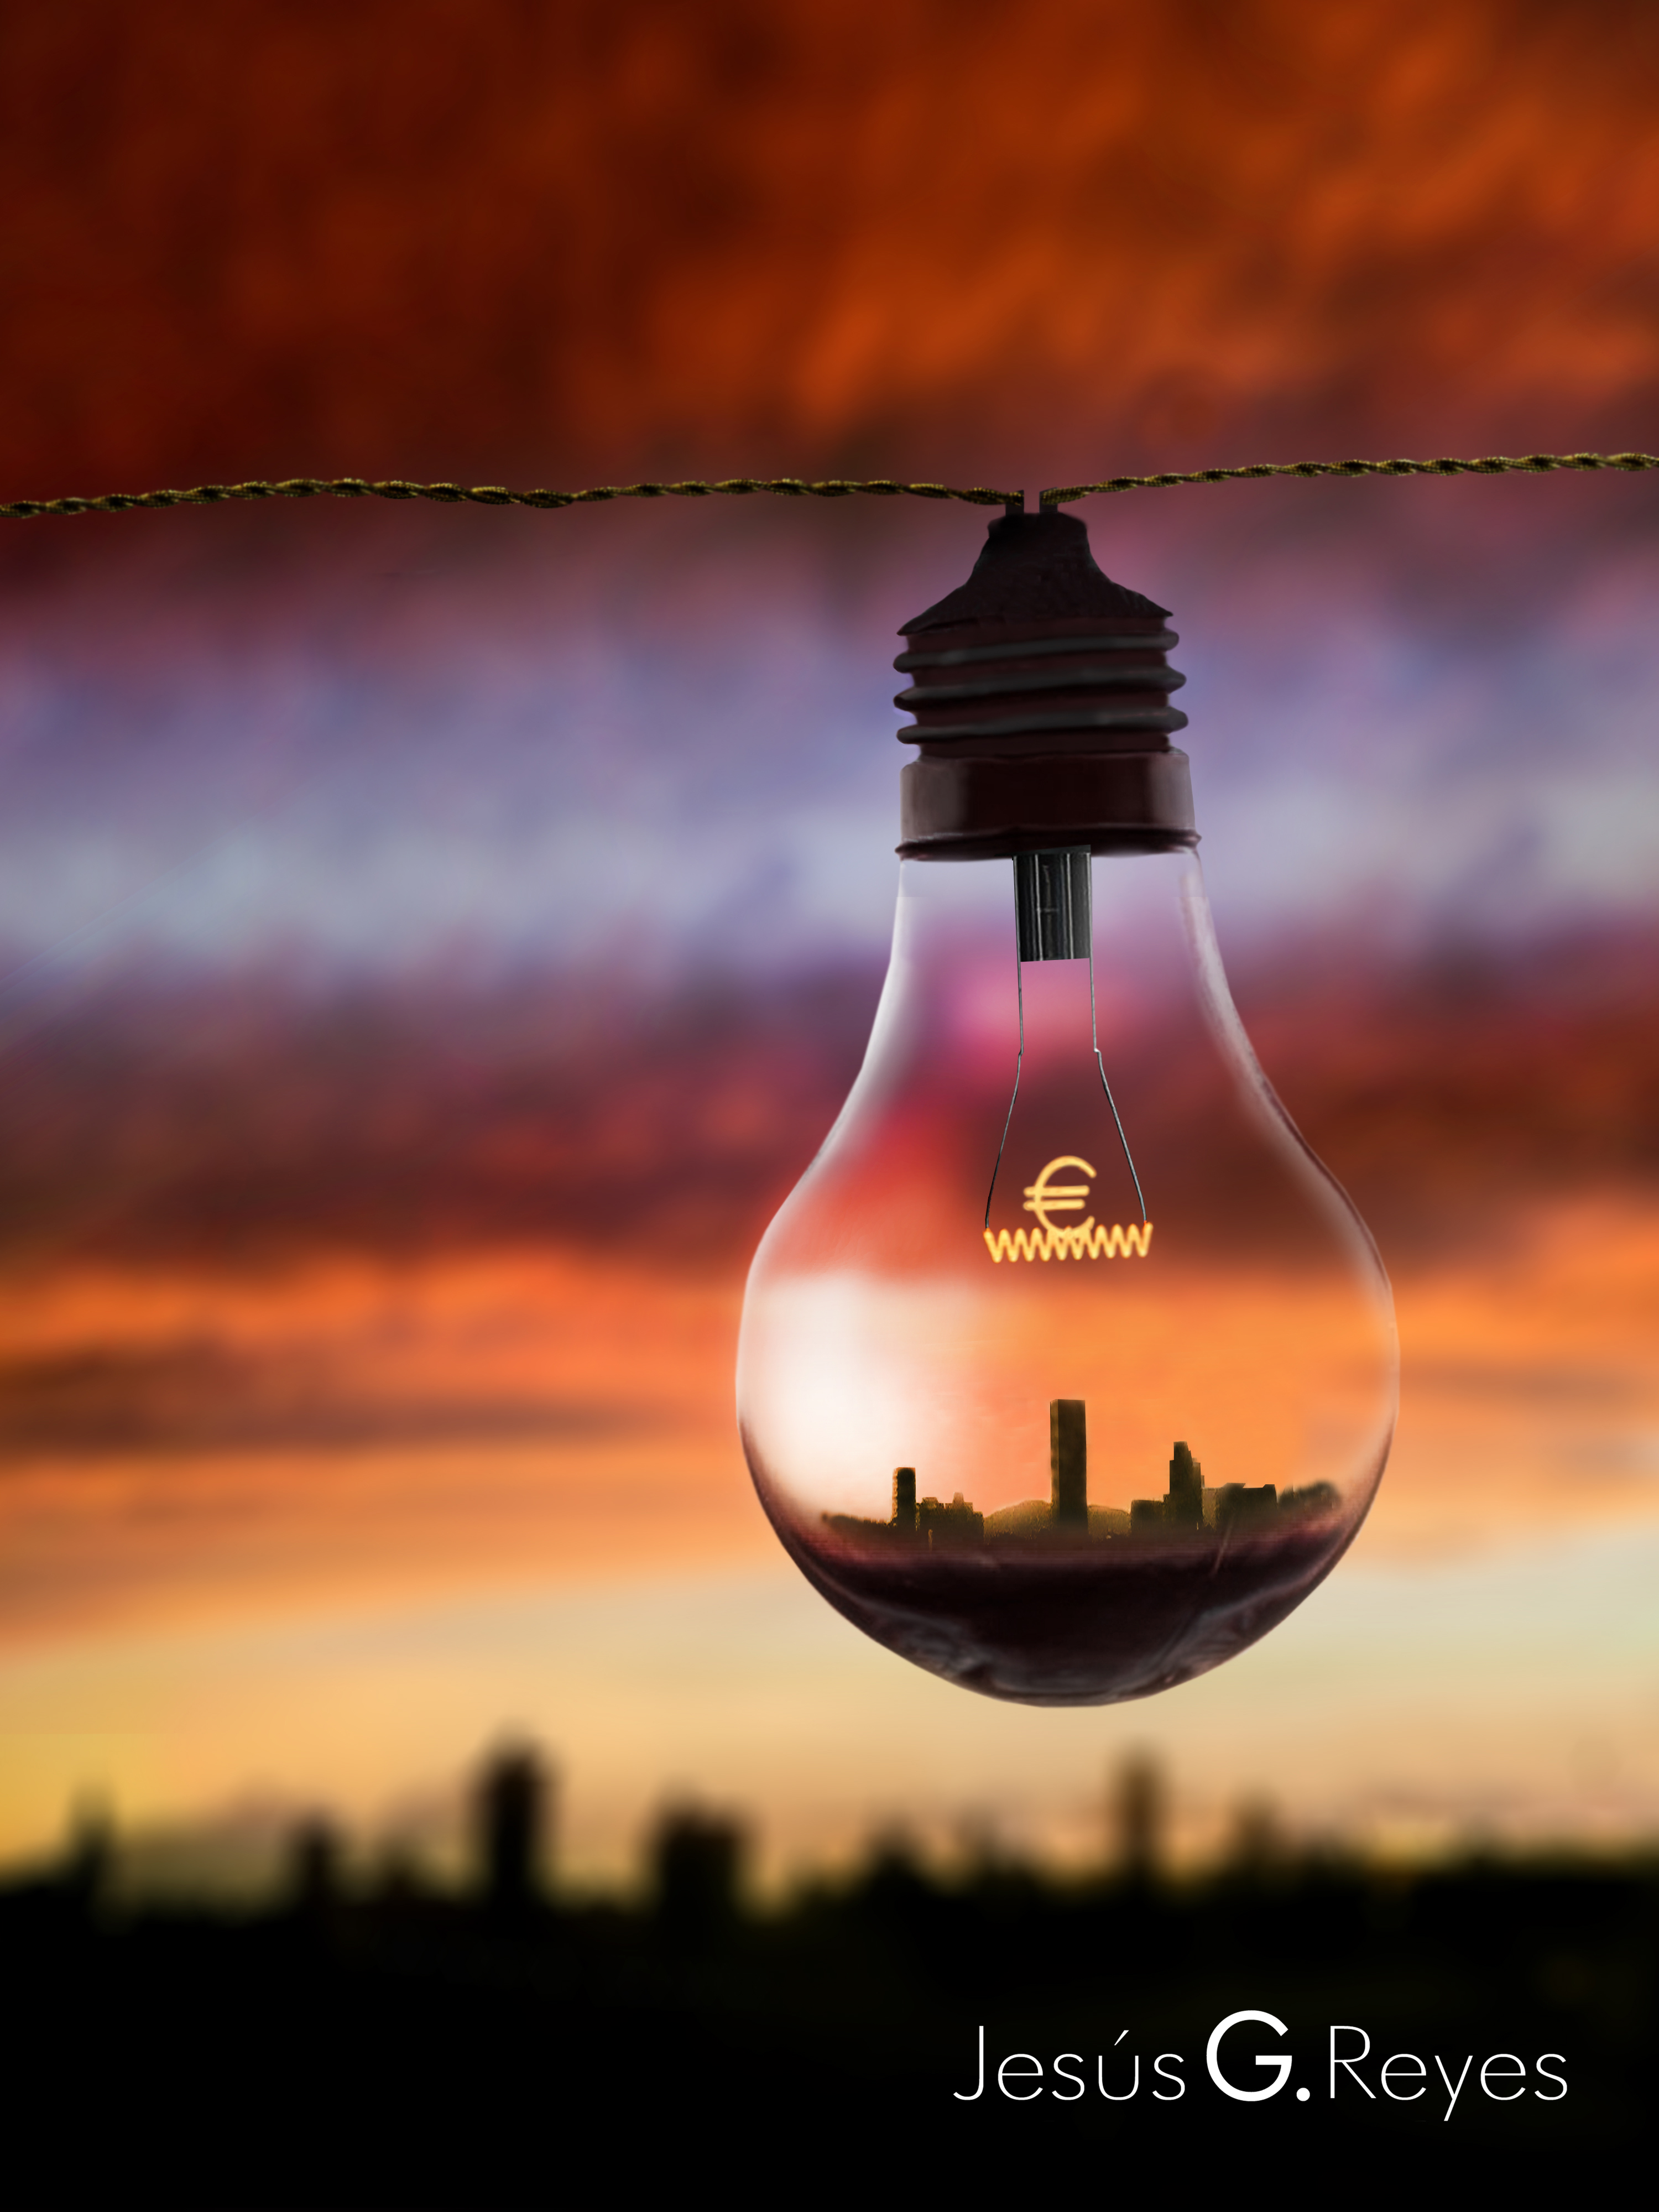 The price of electricity photomontage